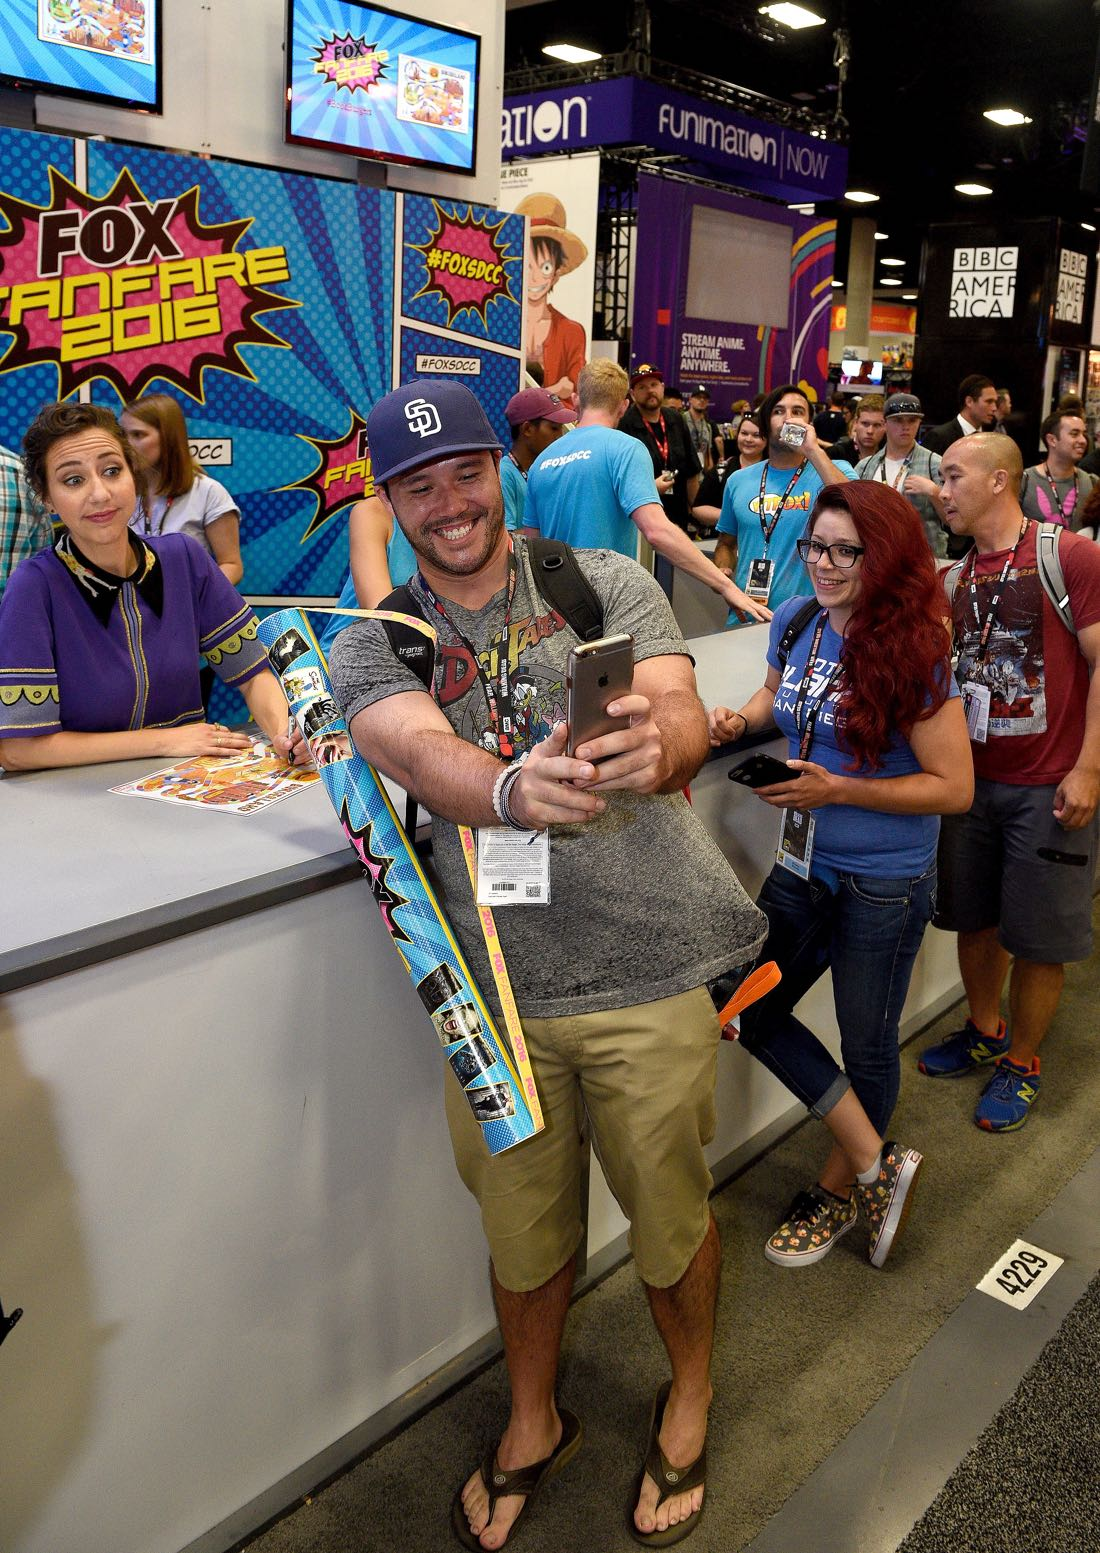 FOX FANFARE AT SAN DIEGO COMIC-CON © 2016: L-R: BOB'S BURGERS cast member Kristen Schaal  and a fan during BOB'S BURGERS booth signing on Friday, July 22 at the FOX FANFARE AT SAN DIEGO COMIC-CON © 2016. CR: Alan Hess/FOX © 2016 FOX BROADCASTING